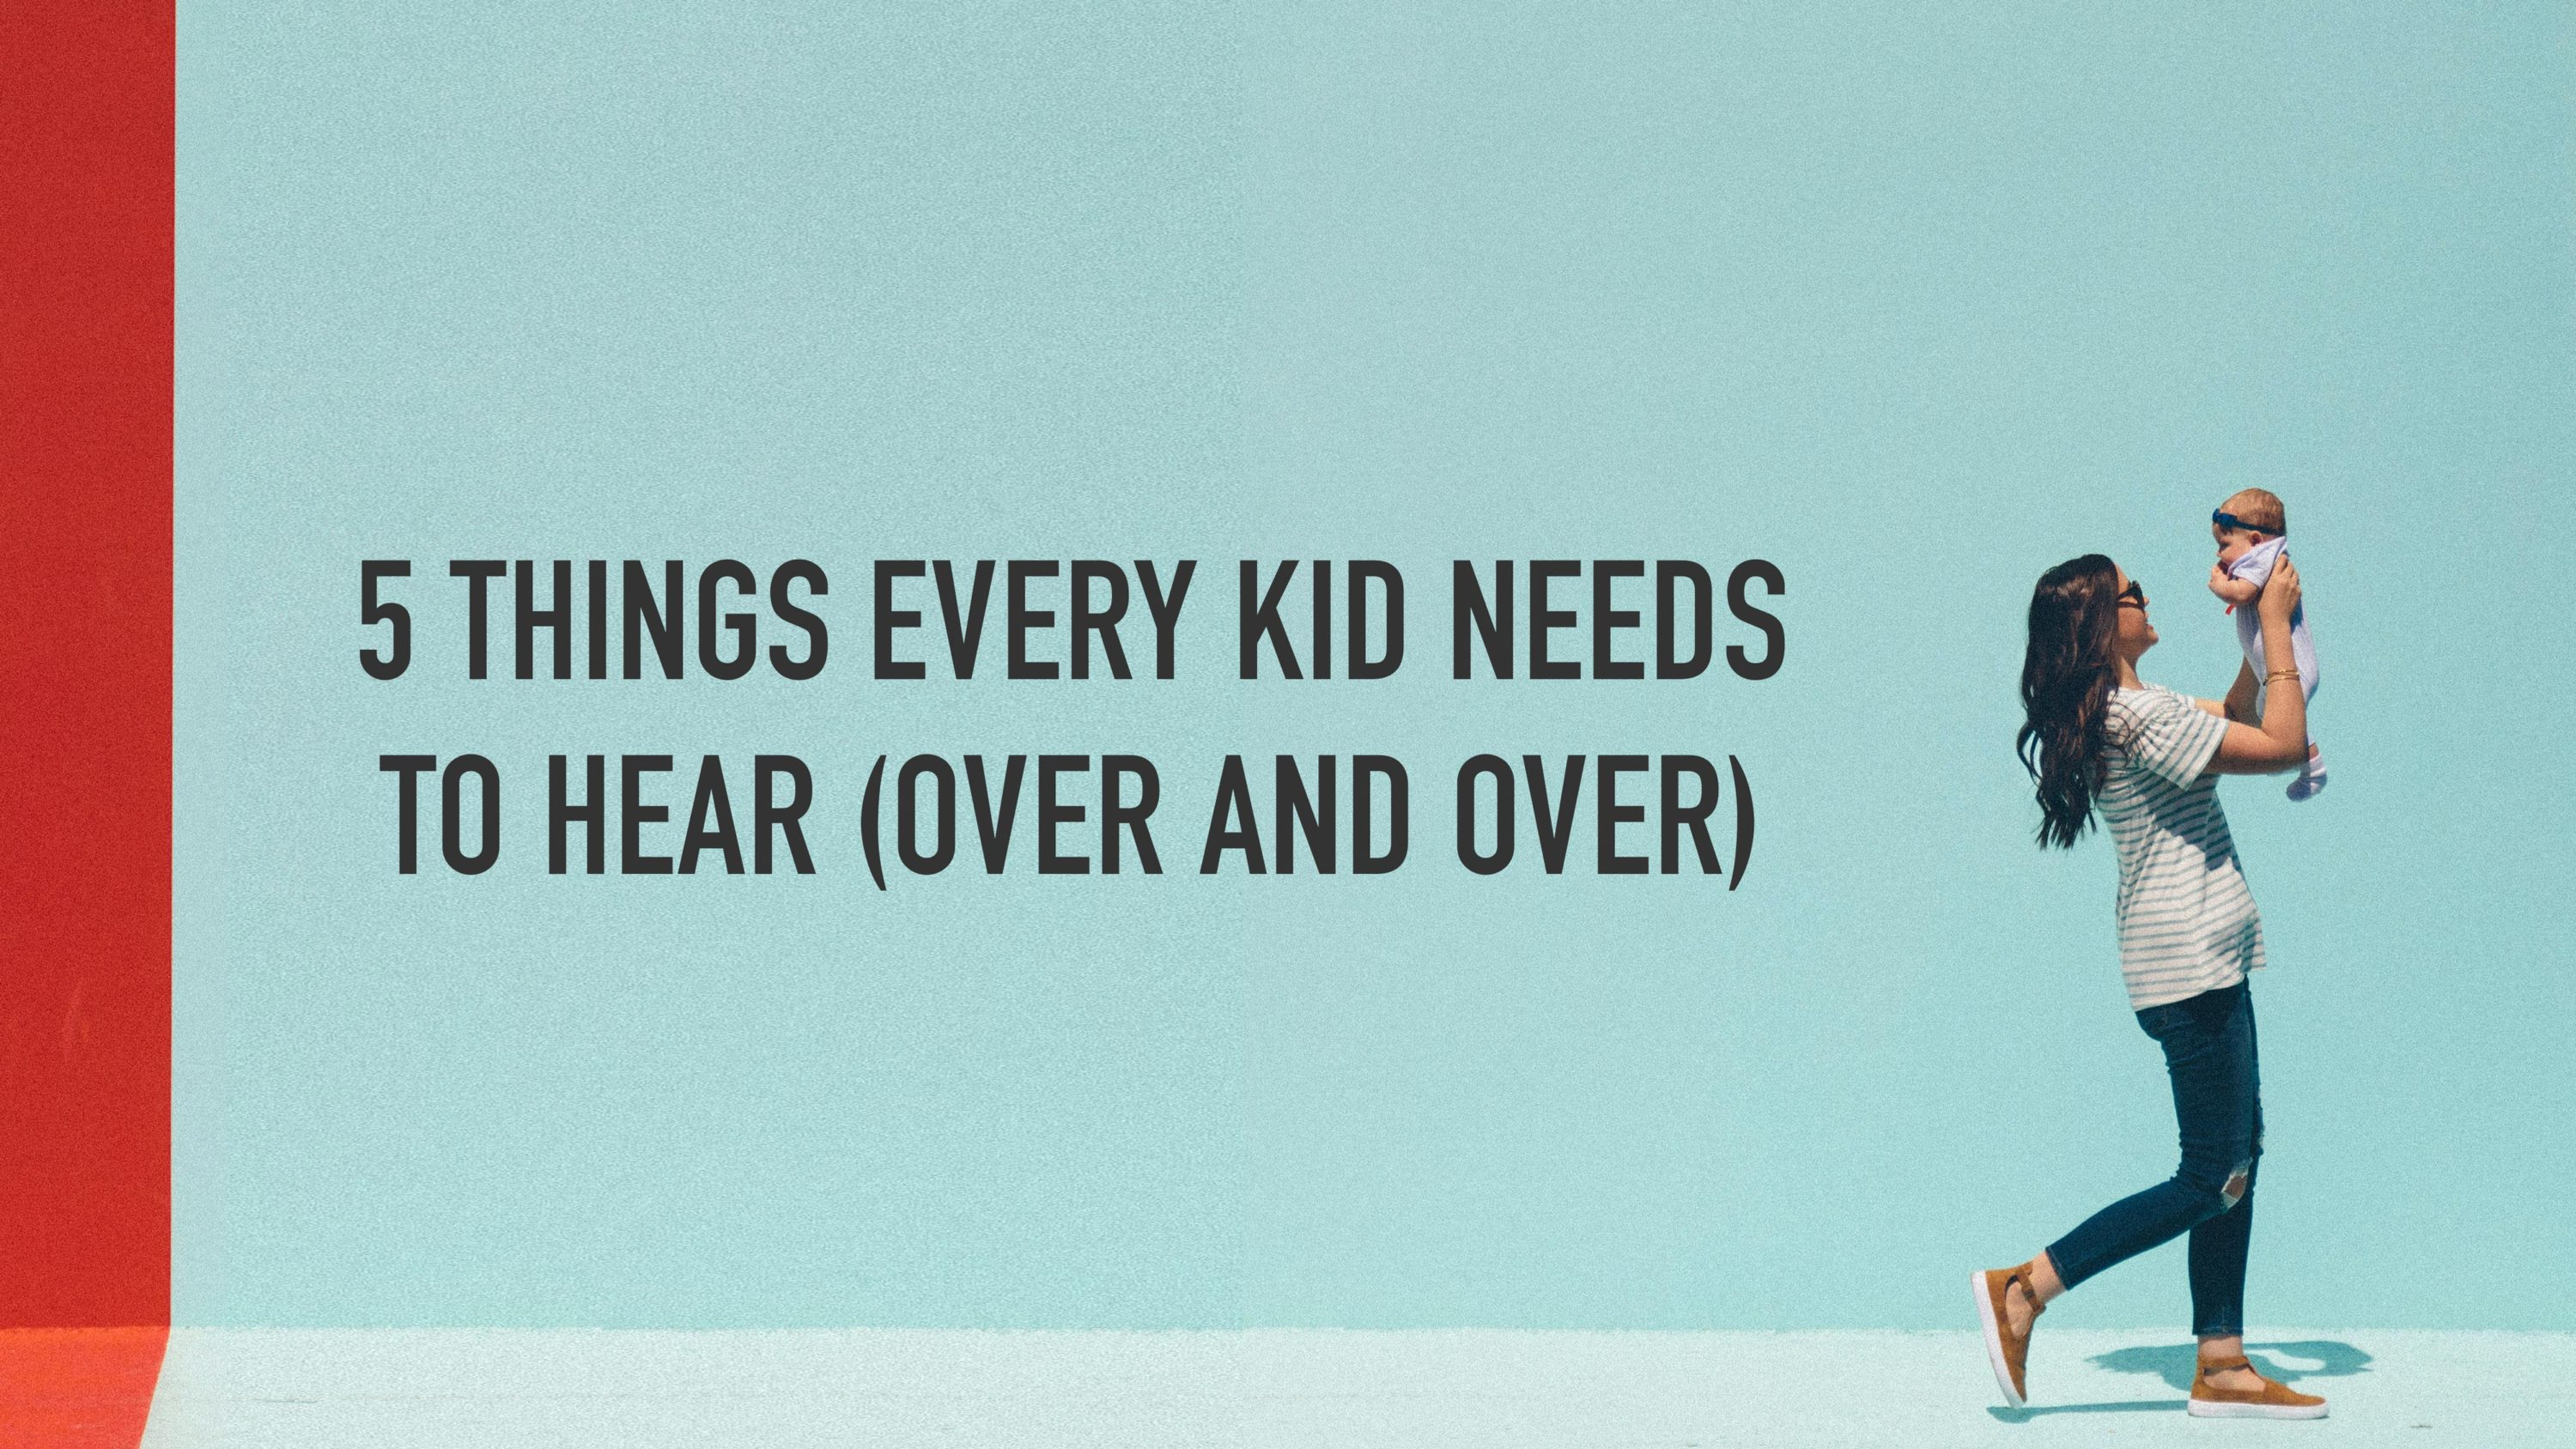 5 Things Every Kid Needs To Hear (Over and Over)